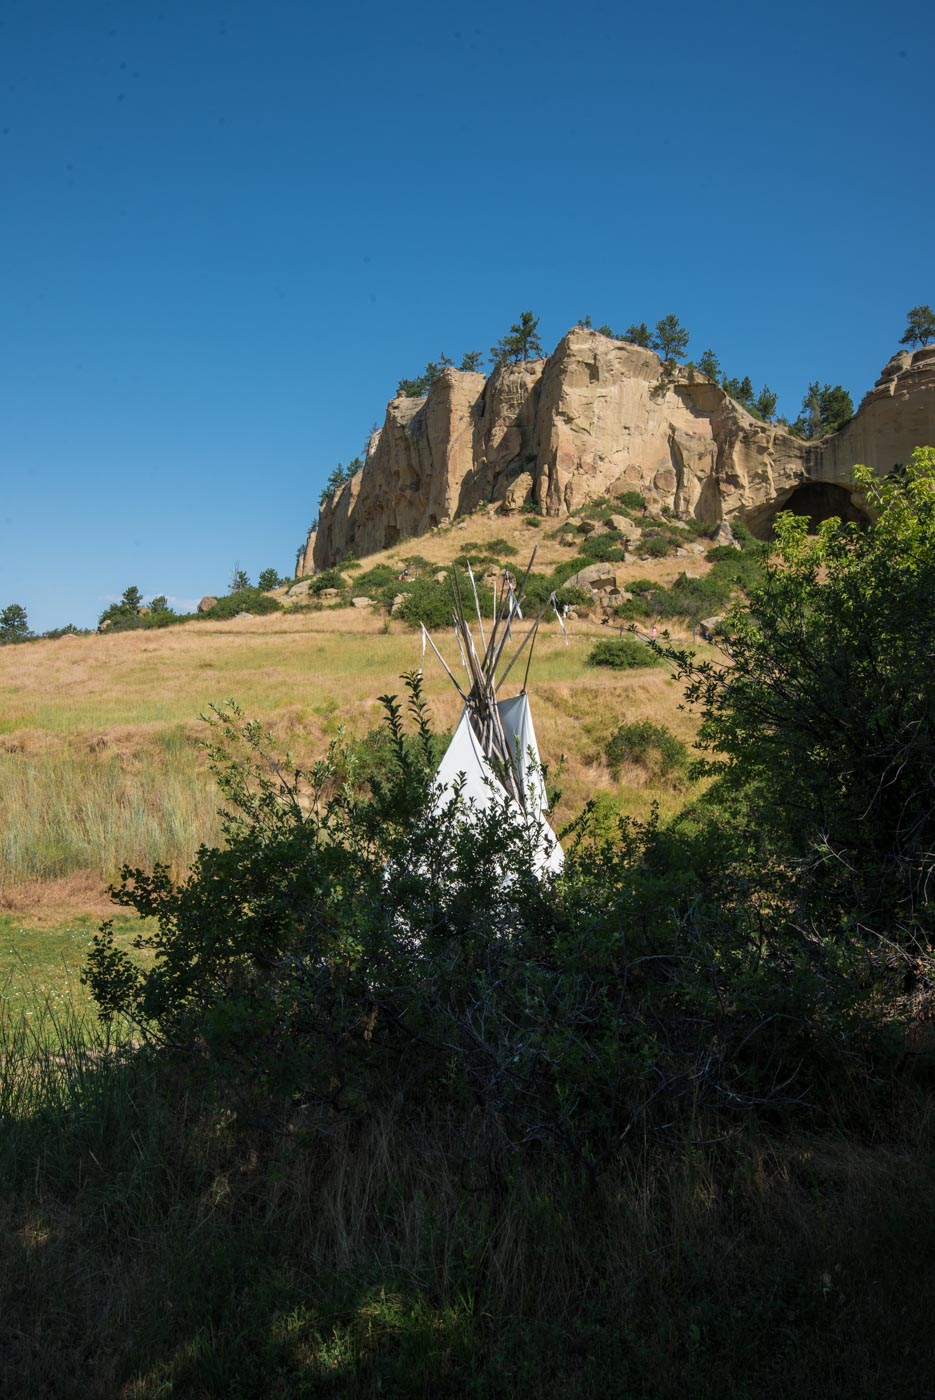 Tipi at the caves